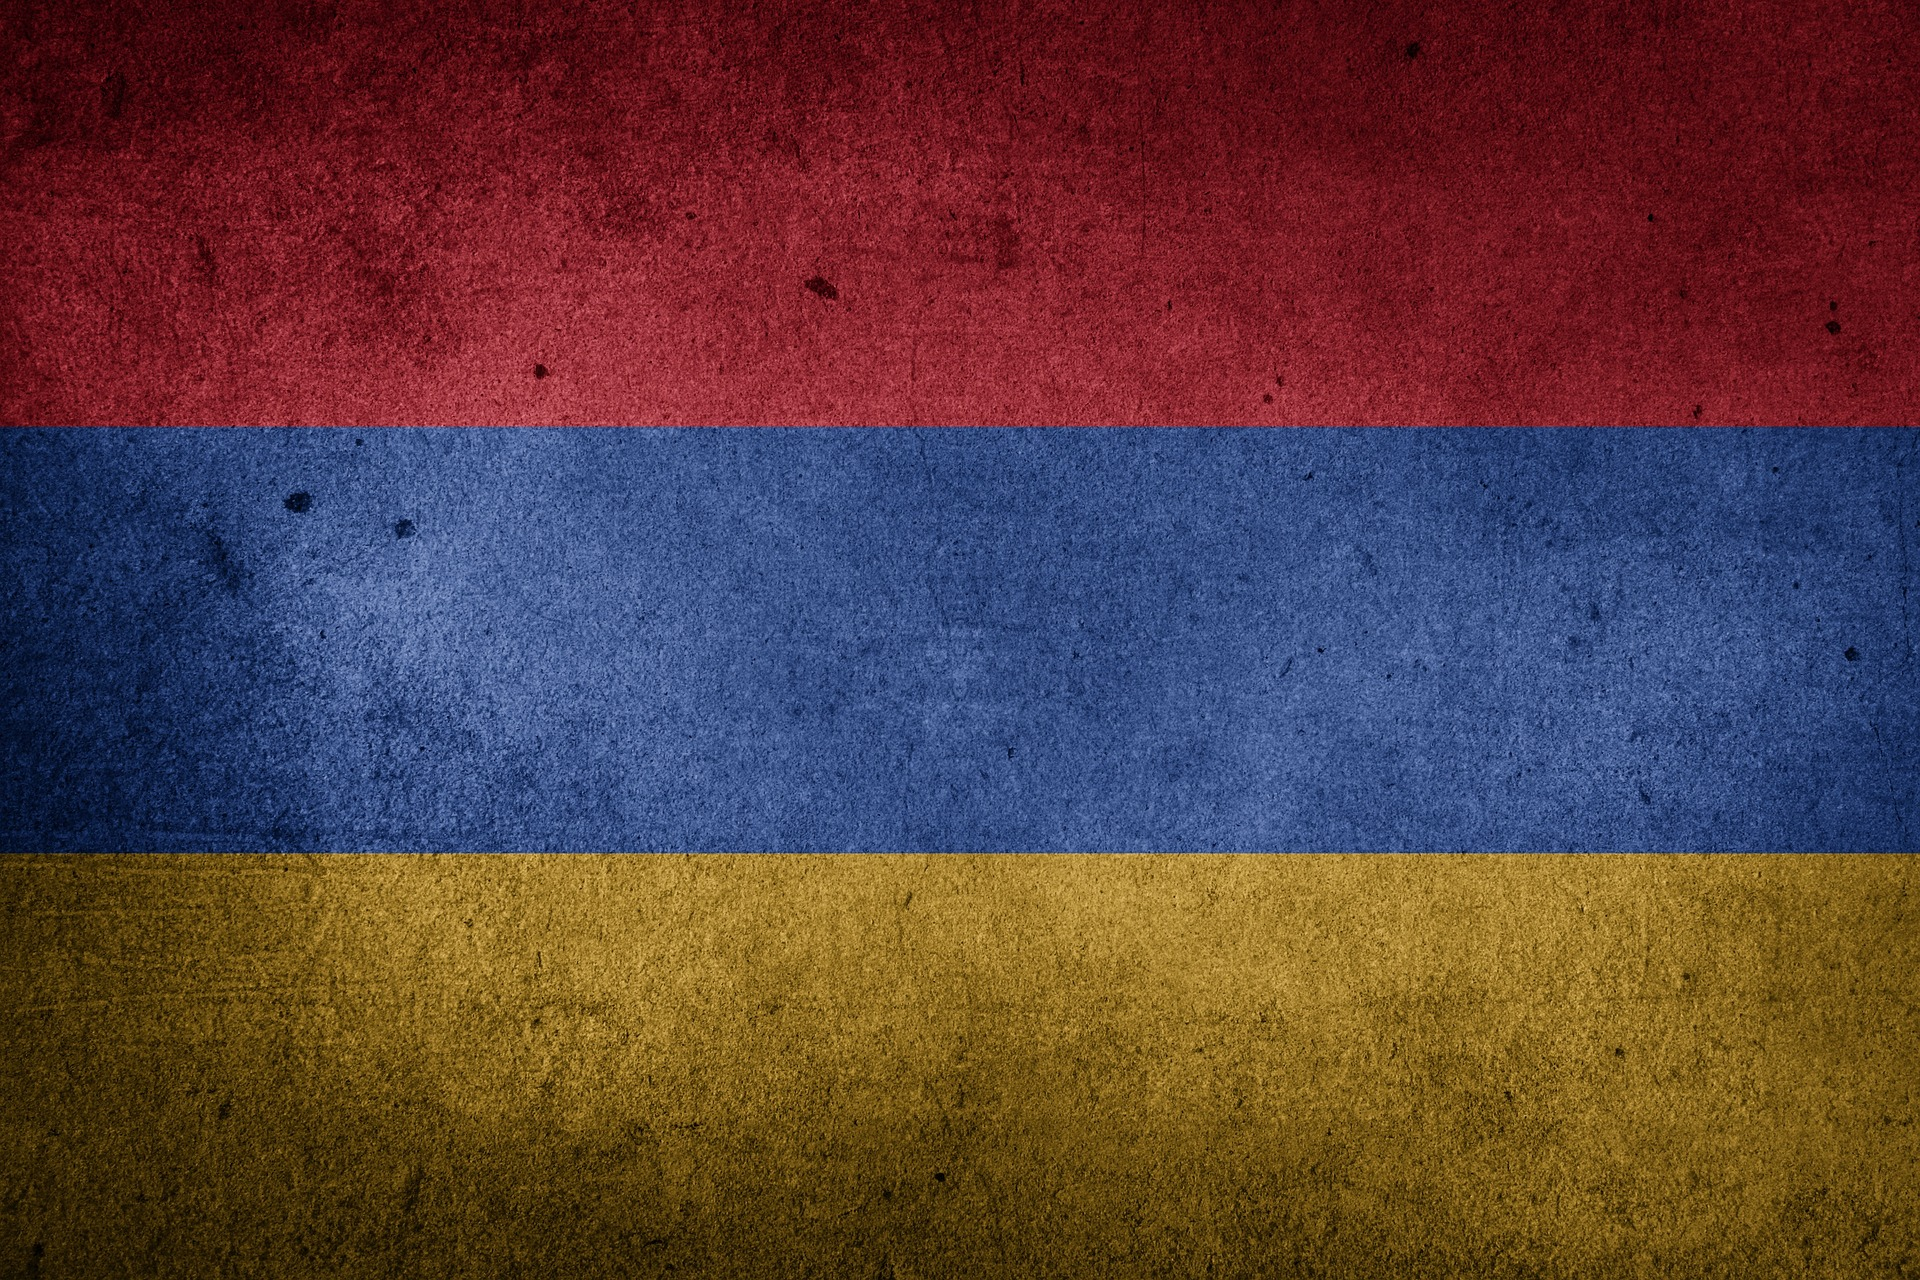 Statement on Attacks Against Civilians in Armenia and Artsakh